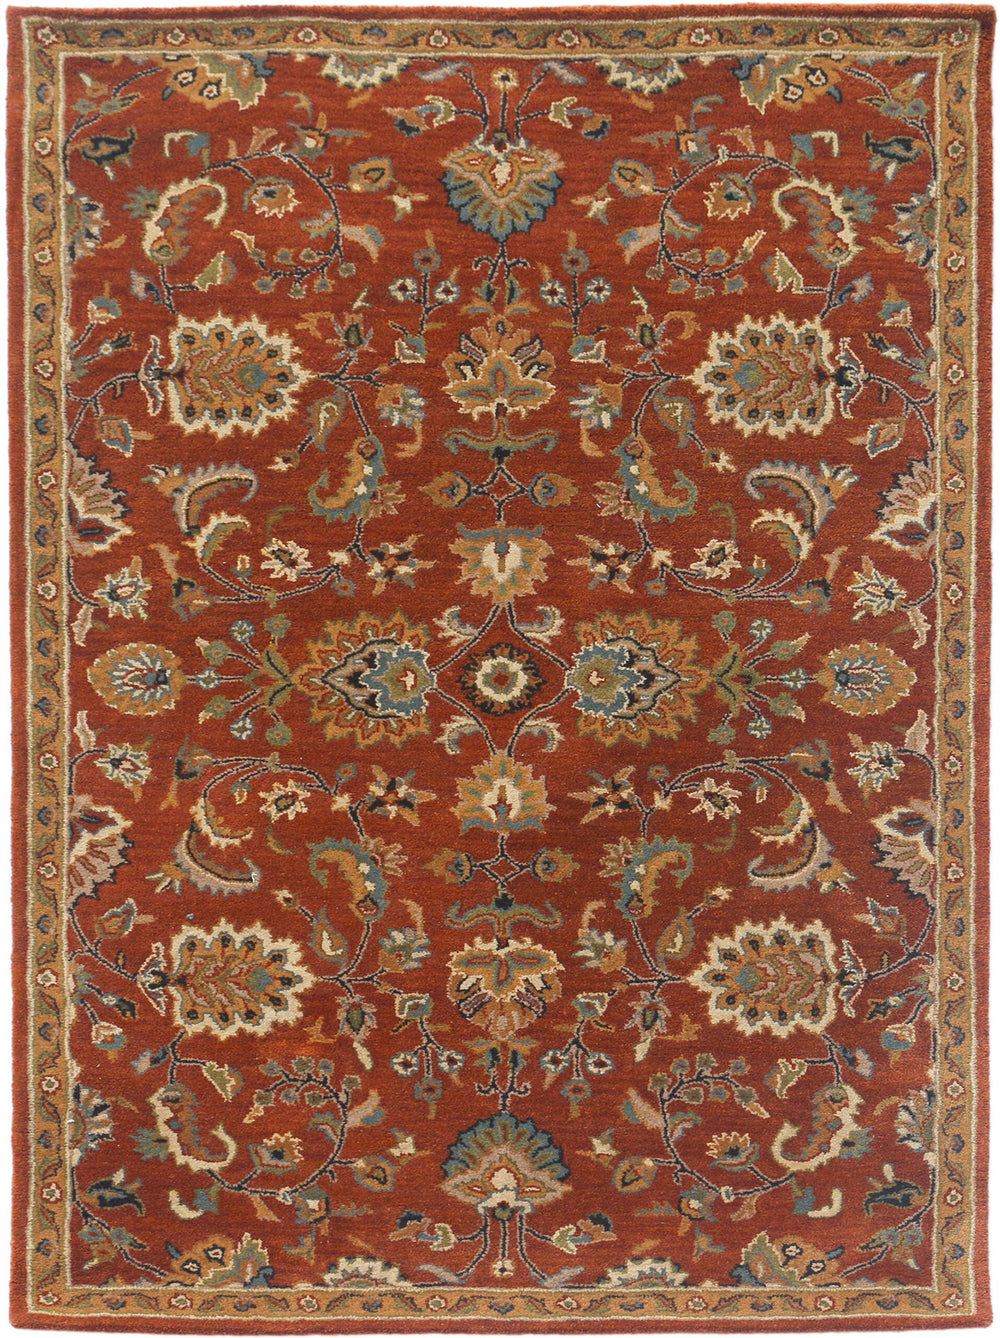 Amer Rugs Liberty LIB-4 Area Rug